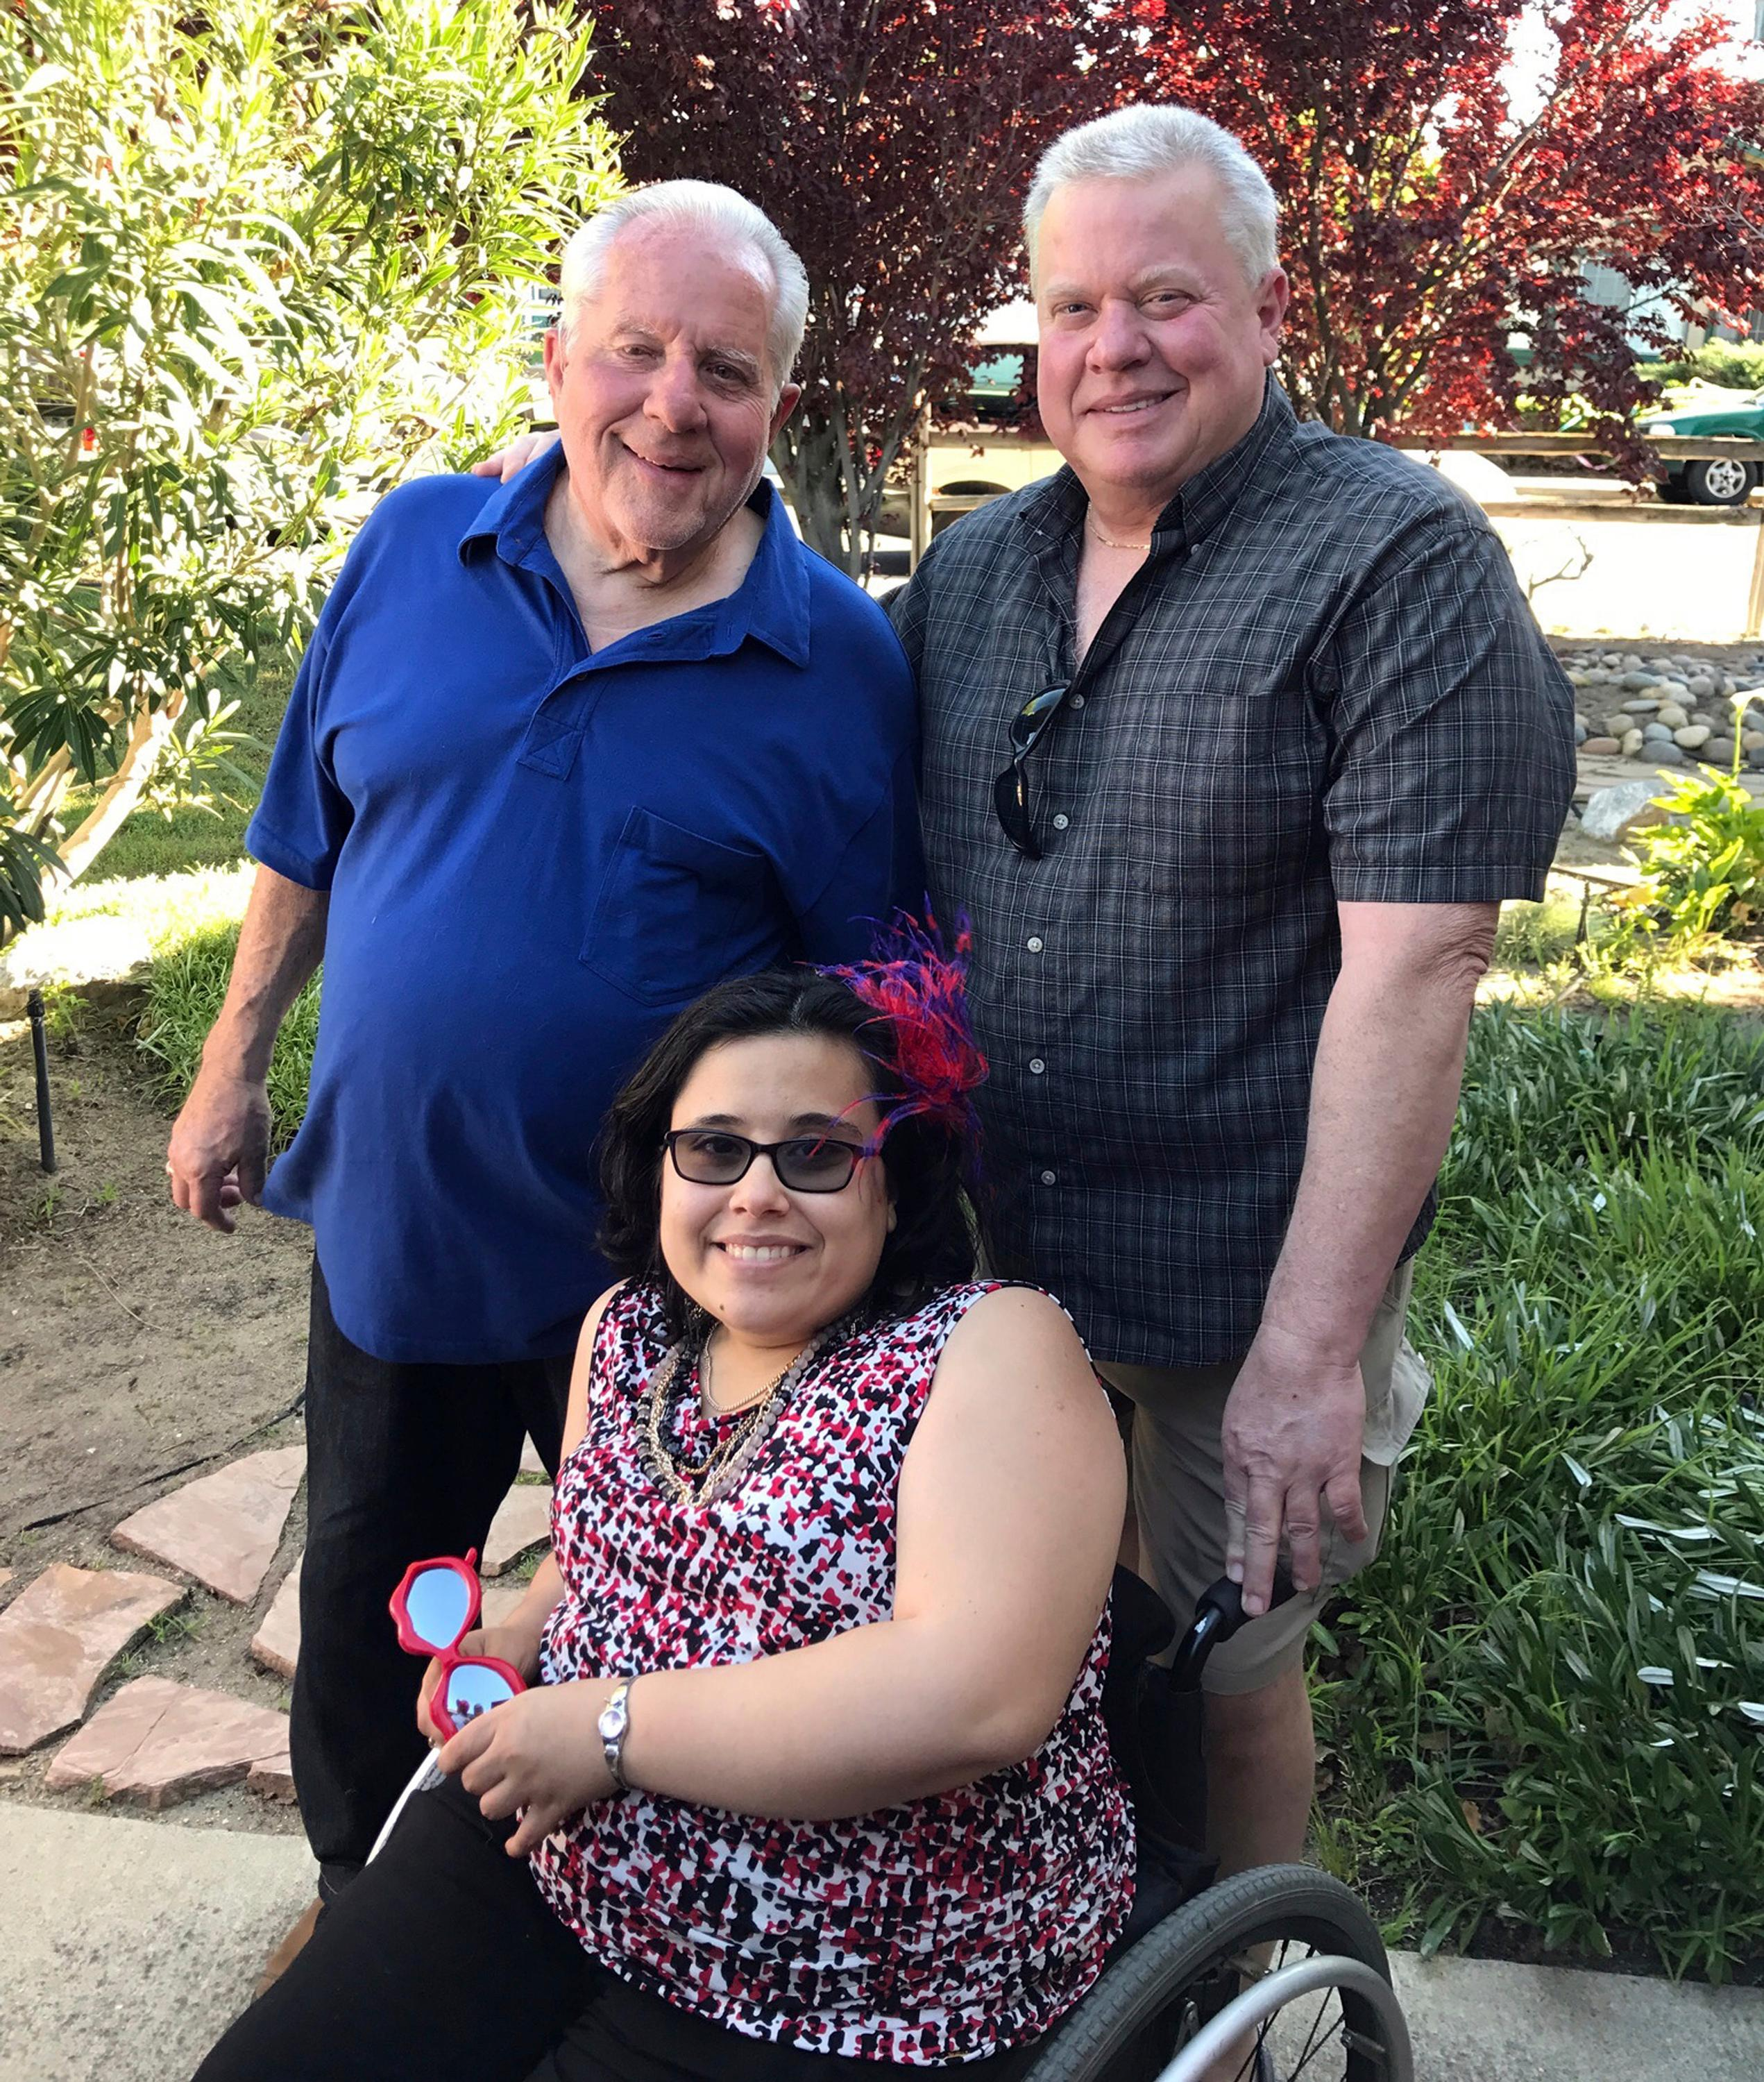 This April, 2017 photo by Brittney Vinculado shows Christina Hanson, with her grandfather Dick Hanson, left, and her father Michael Hanson, in Oakley, Calif. Christina Hanson, 27, used a wheelchair and spent her life dedicated to helping others despite her own hardships, her family said. Kelsi Mannhalter had posted on social media asking people to search for her cousin after the fire Monday ravaged Santa Rosa where Hanson lived. Mannhalter later confirmed on Facebook that Hanson did not survive when the flames consumed her home. (Brittney Vinculado via AP)